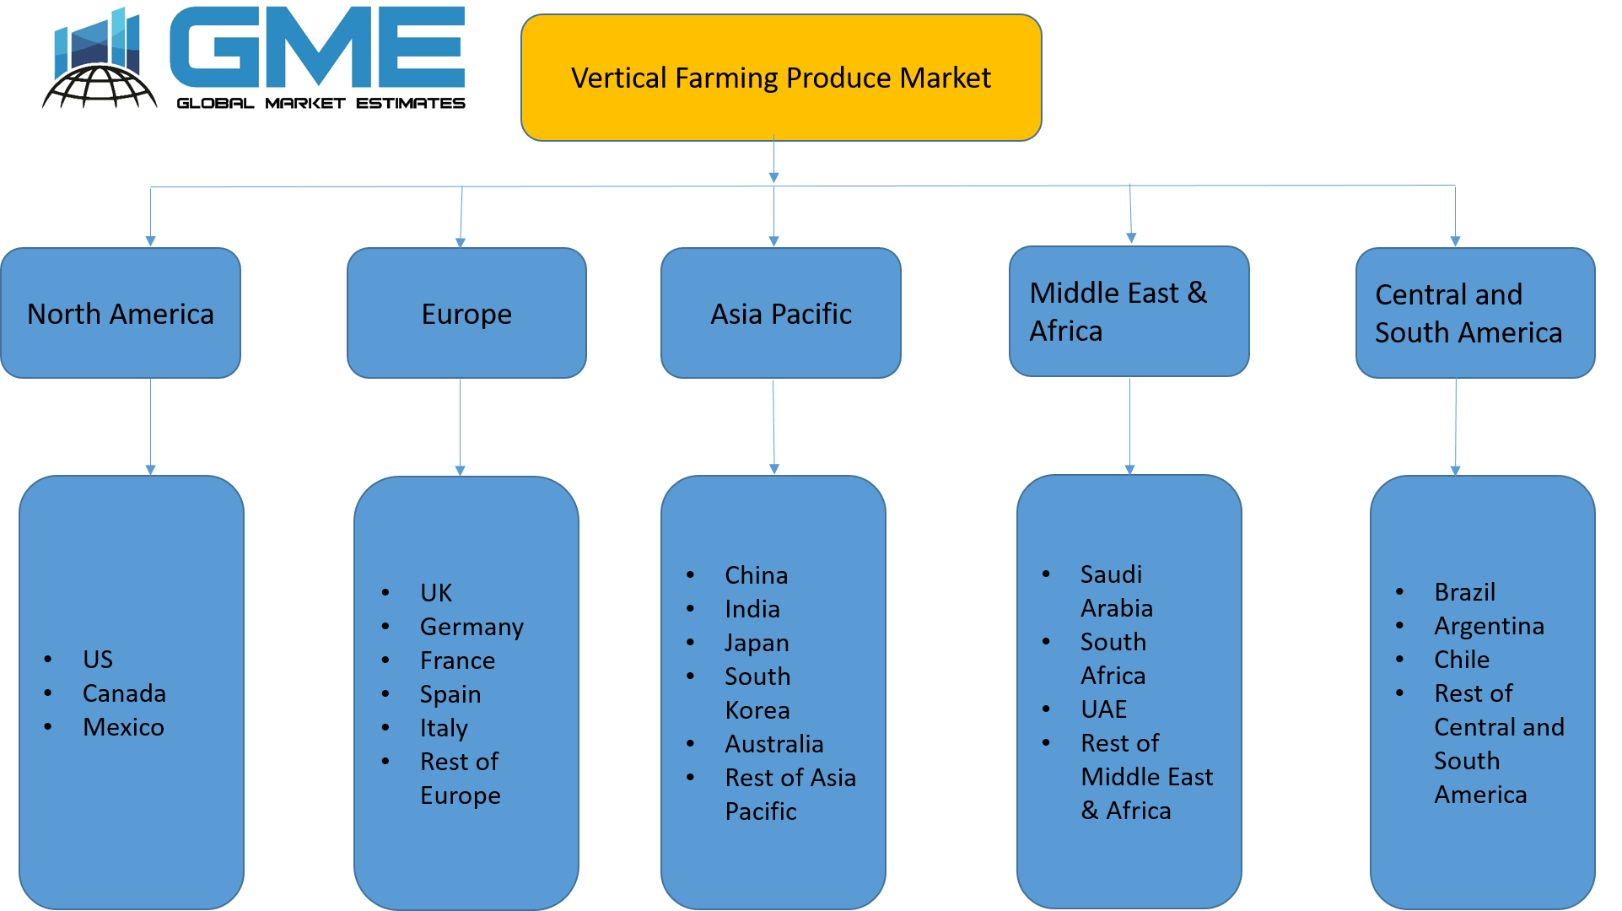 Global Vertical Farming Produce Market